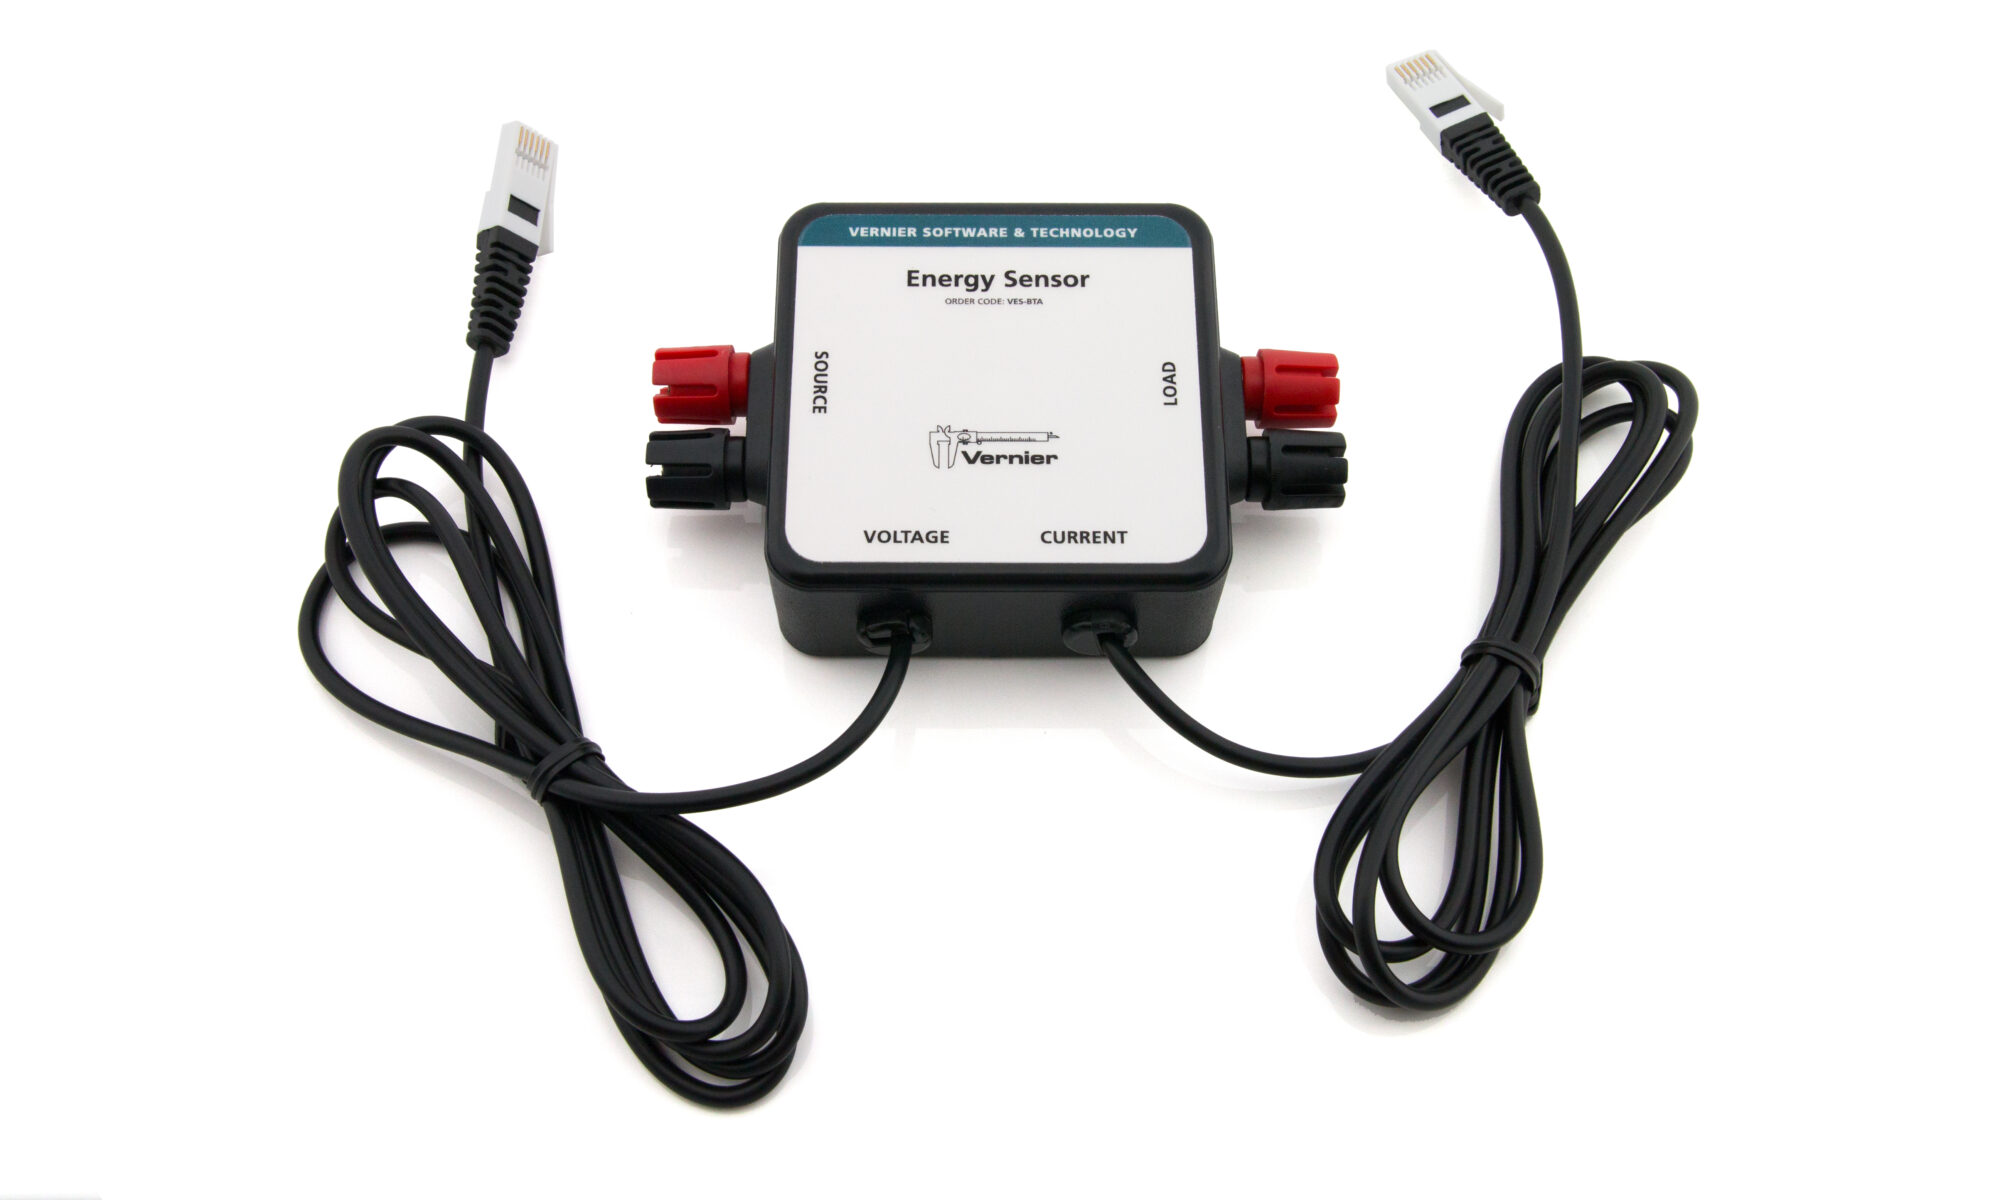 Image of Vernier Energy Sensor